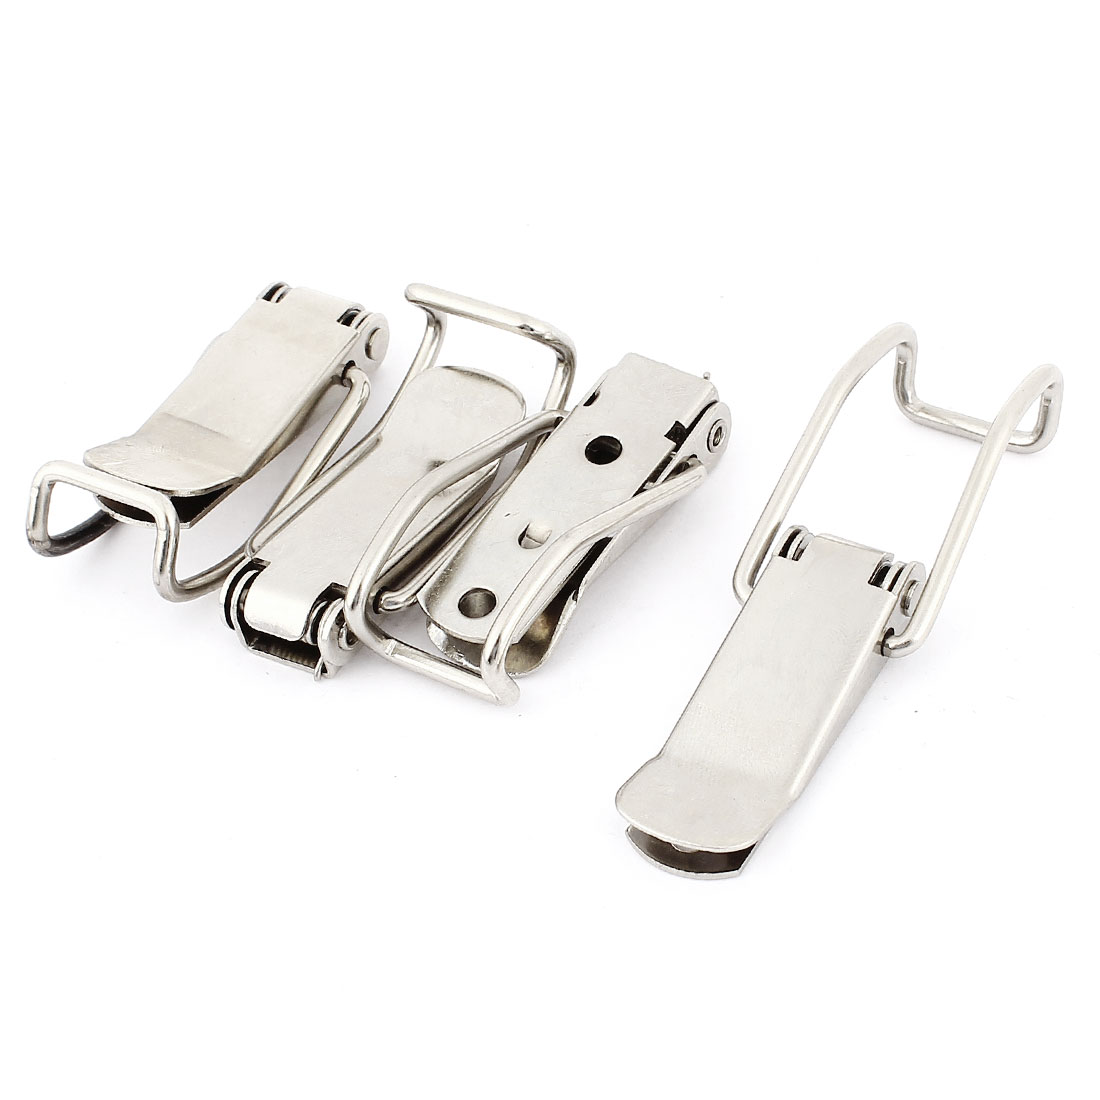 "Drawer Closet Hardware 2.8"" Long Stainless Steel Toggle Latch Catch 4pcs"